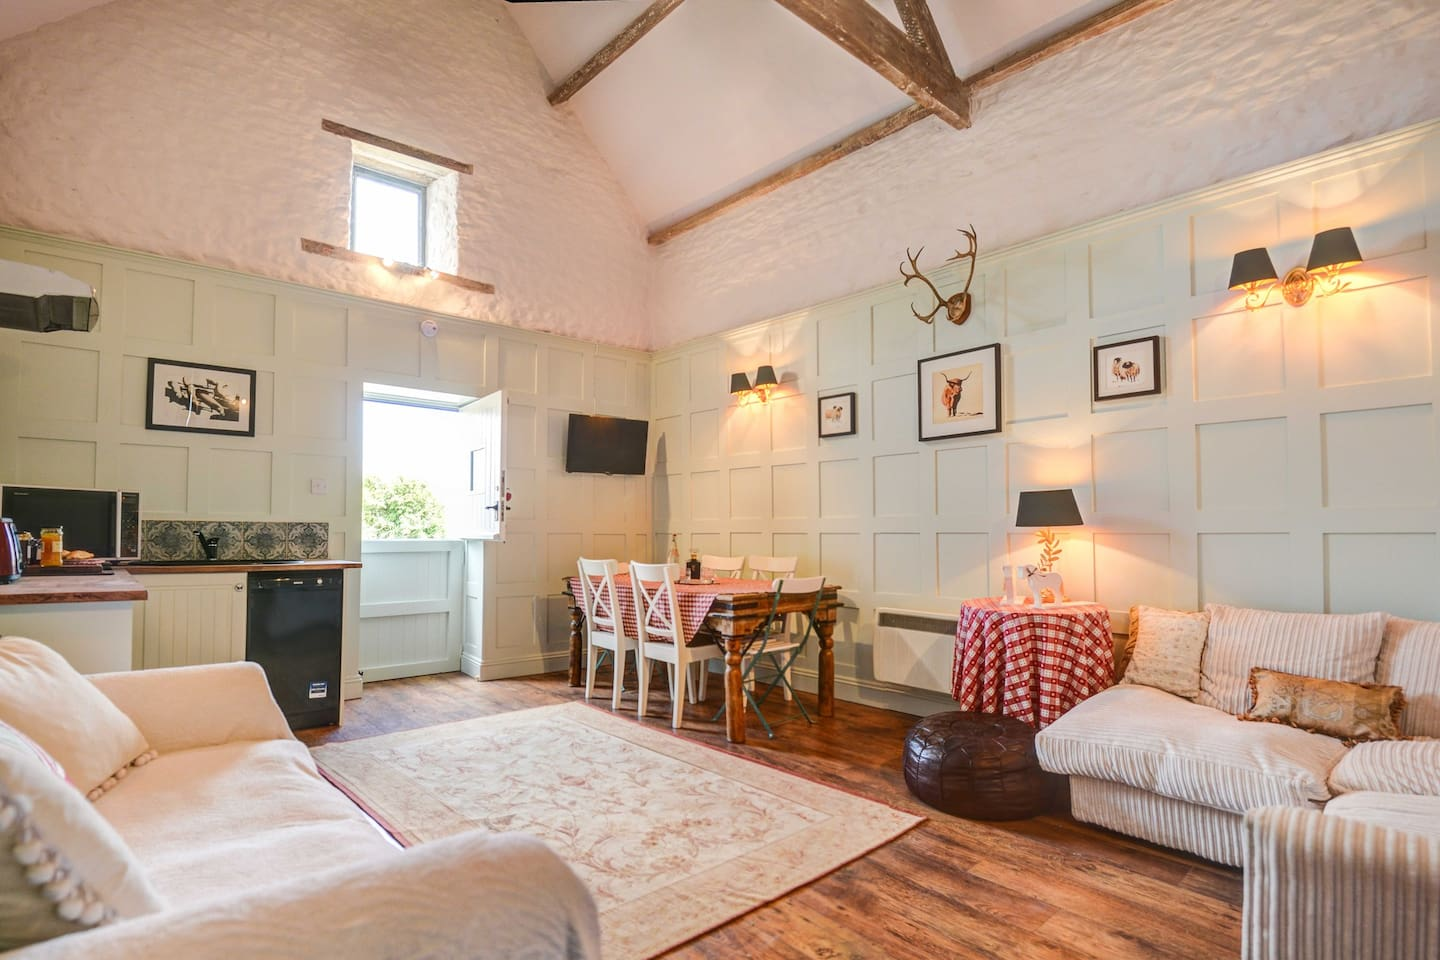 So much space for socialising together in the stunning Hayloft . It has  fully equipped kitchenette with hob, cooker, dishwasher, a dining area for 6 guest ,smart TV, wifi, largecorner sofa plus a double sofa bed ..........